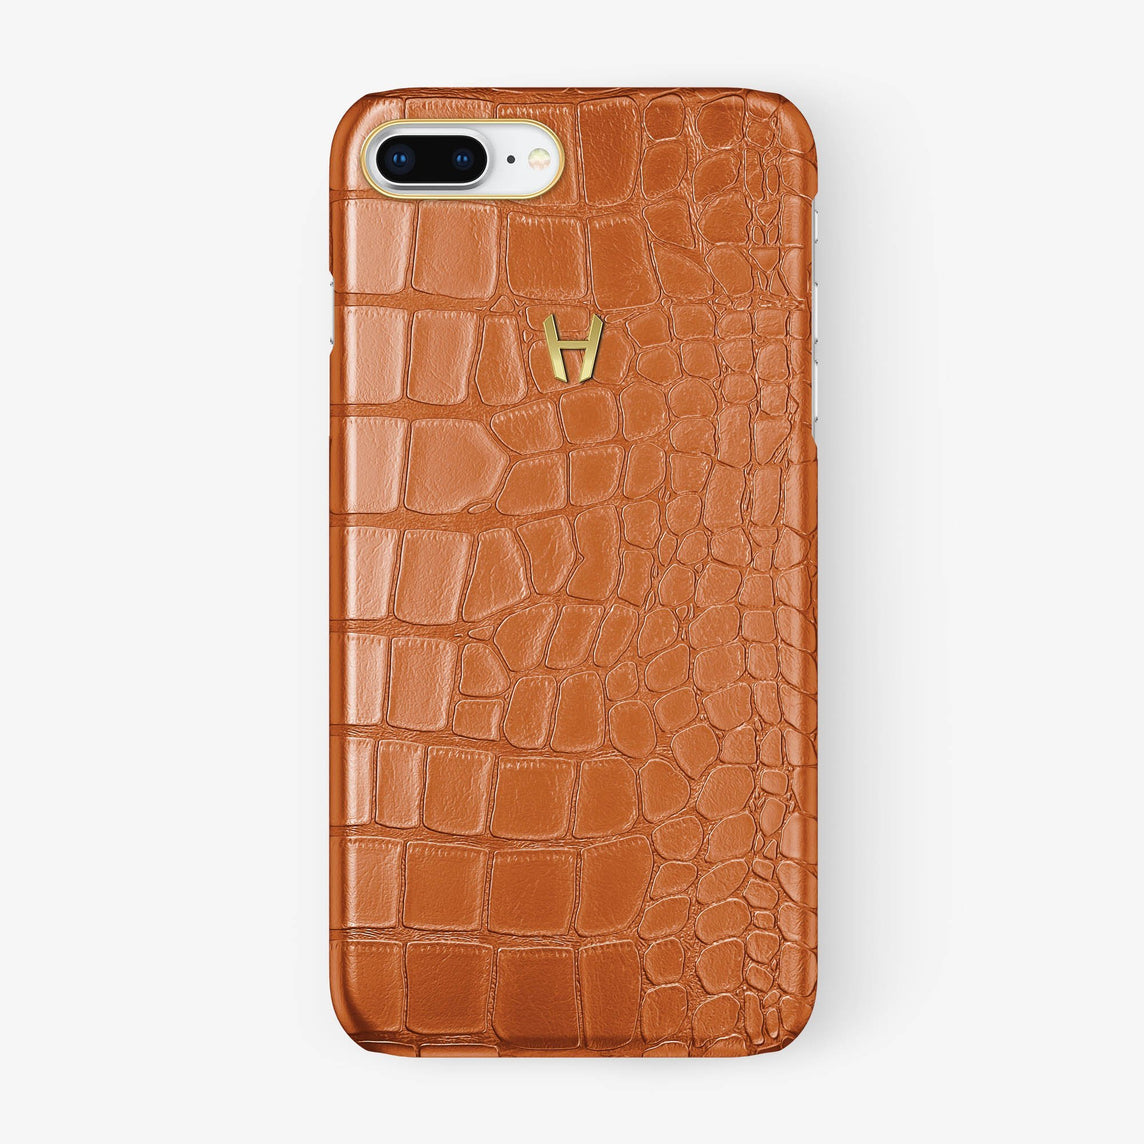 Alligator Case iPhone 7/8 Plus | Orange - Yellow Gold - Hadoro